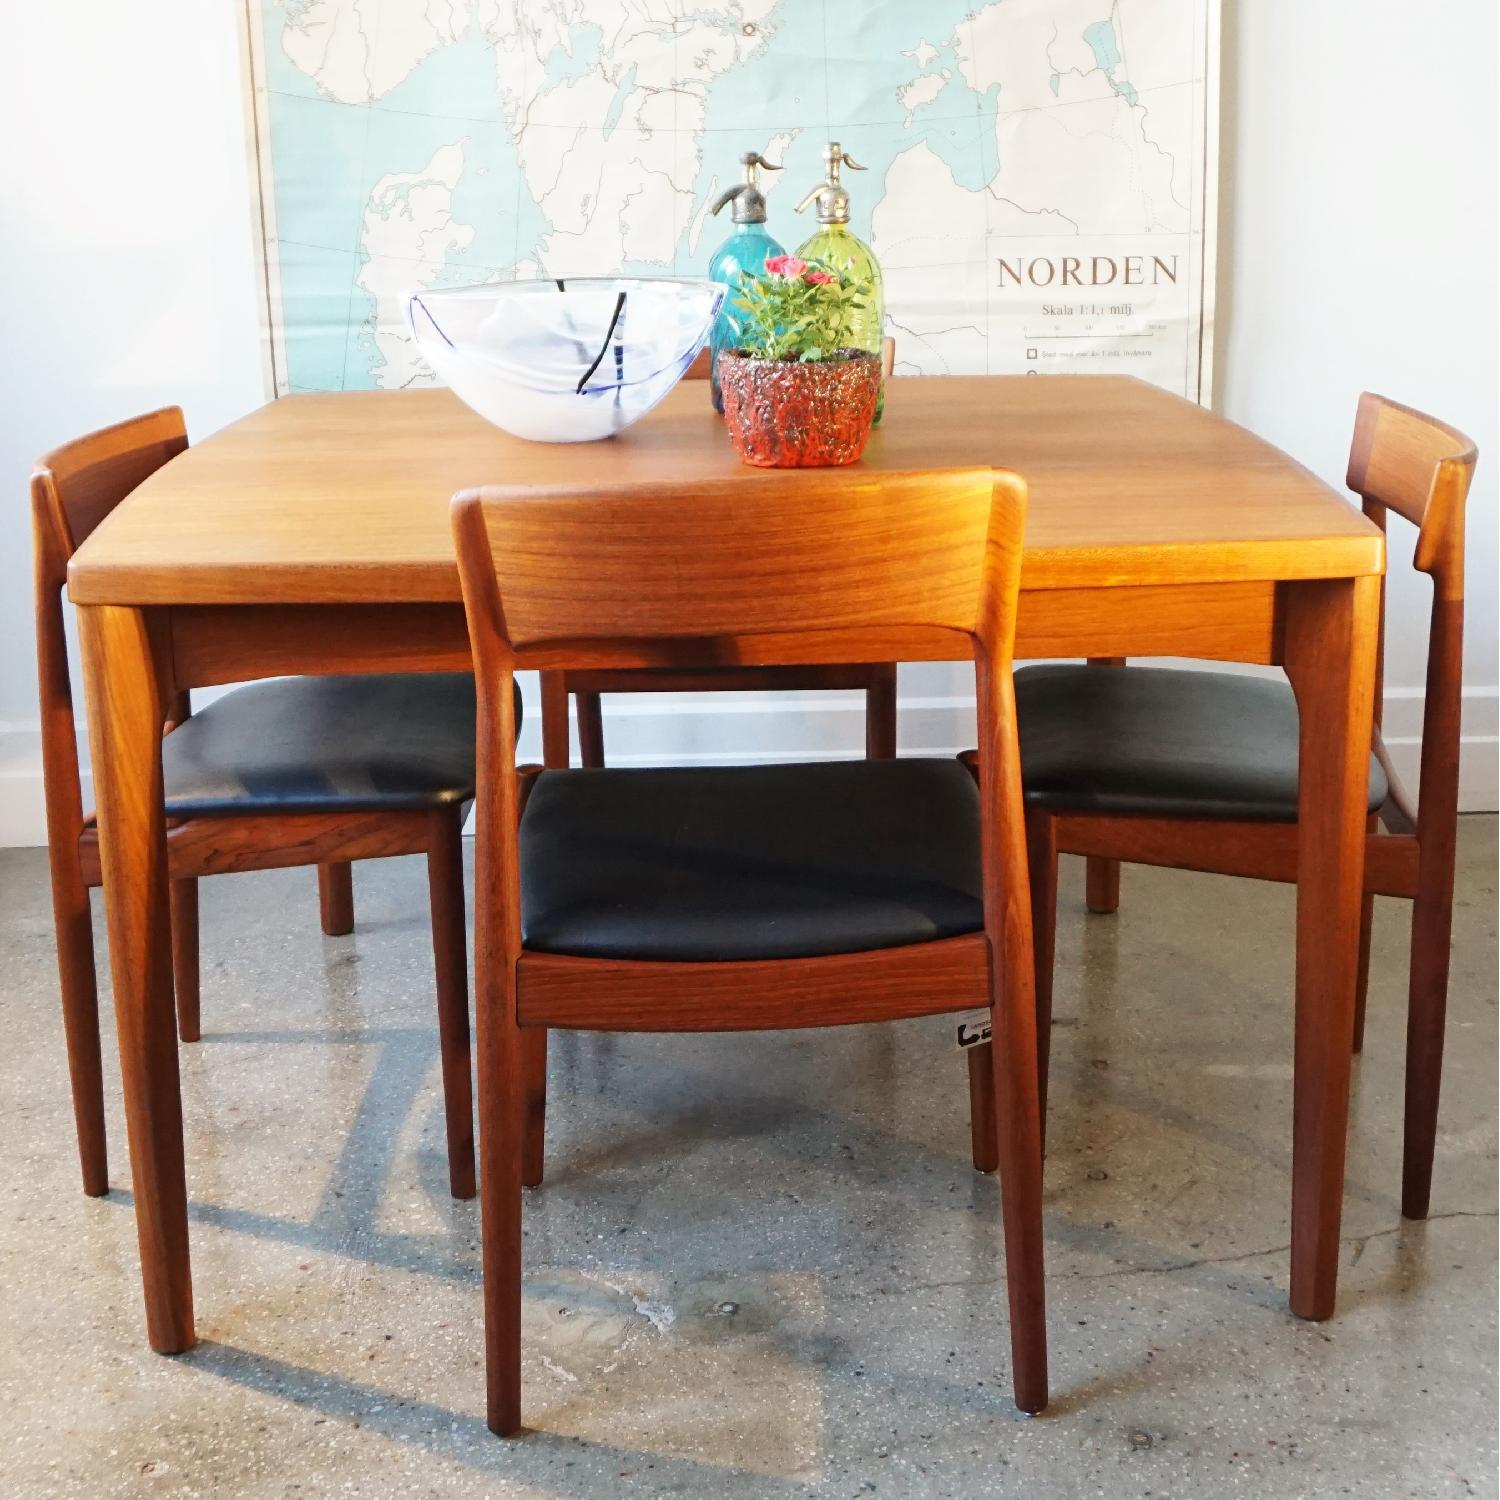 Henning Kjrnulf Extendable Dining Table - image-6